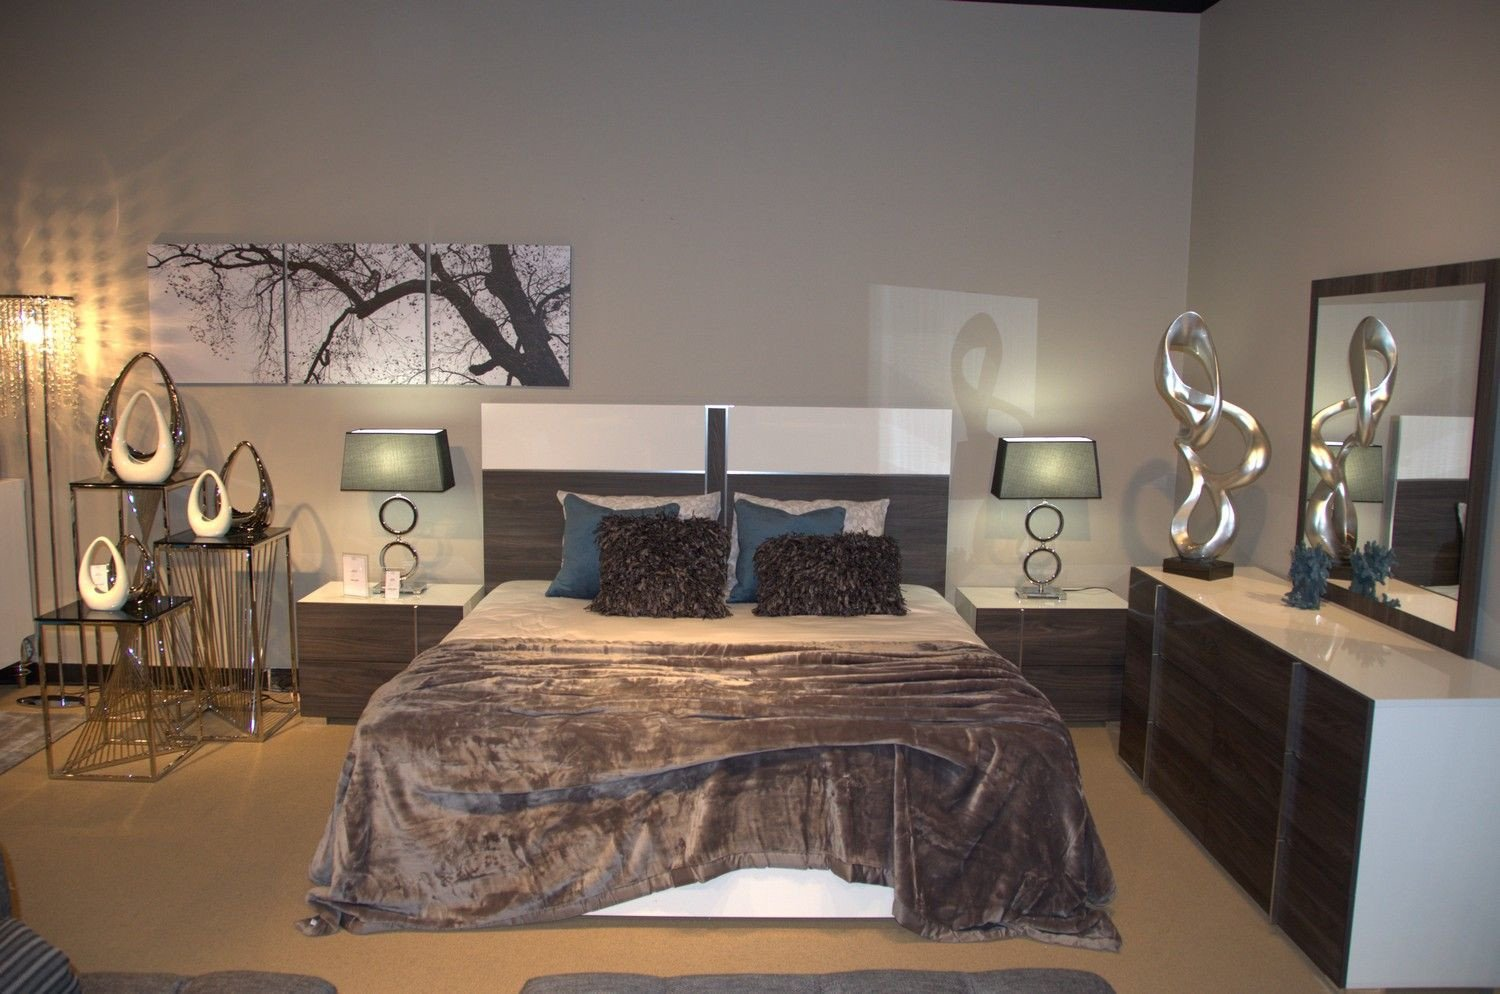 White Gloss Bedroom Furniture Lovely the Nova Domus Bedroom Set Will Give Your Bedroom A form Of